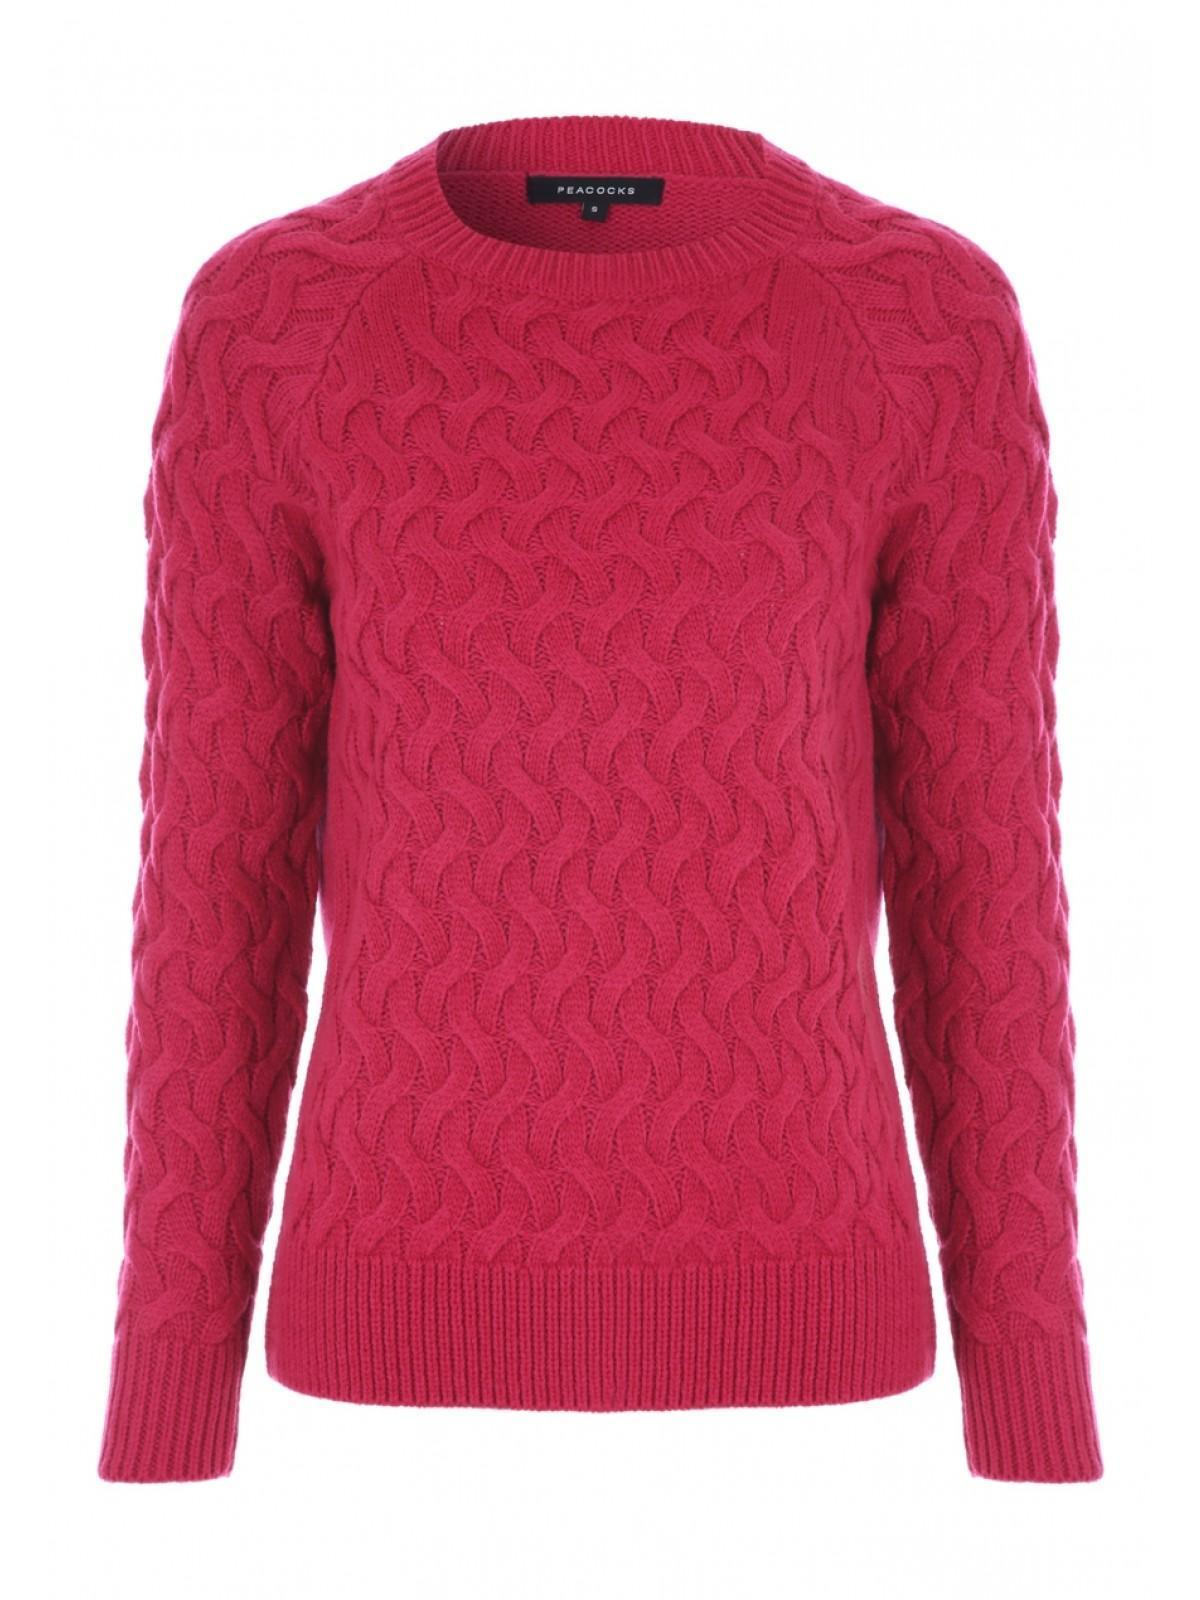 1d5ef049a00 Womens Pink 3D Cable Knit Jumper